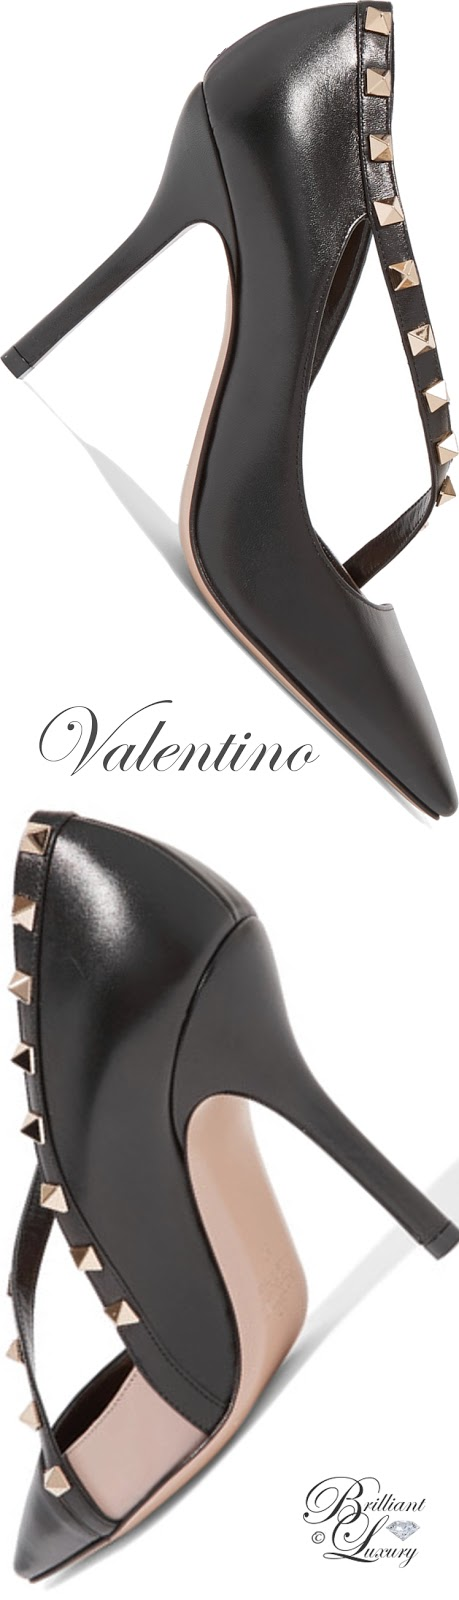 Brilliant Luxury ♦ Valentino Rockstud Two-Tone Leather Pumps